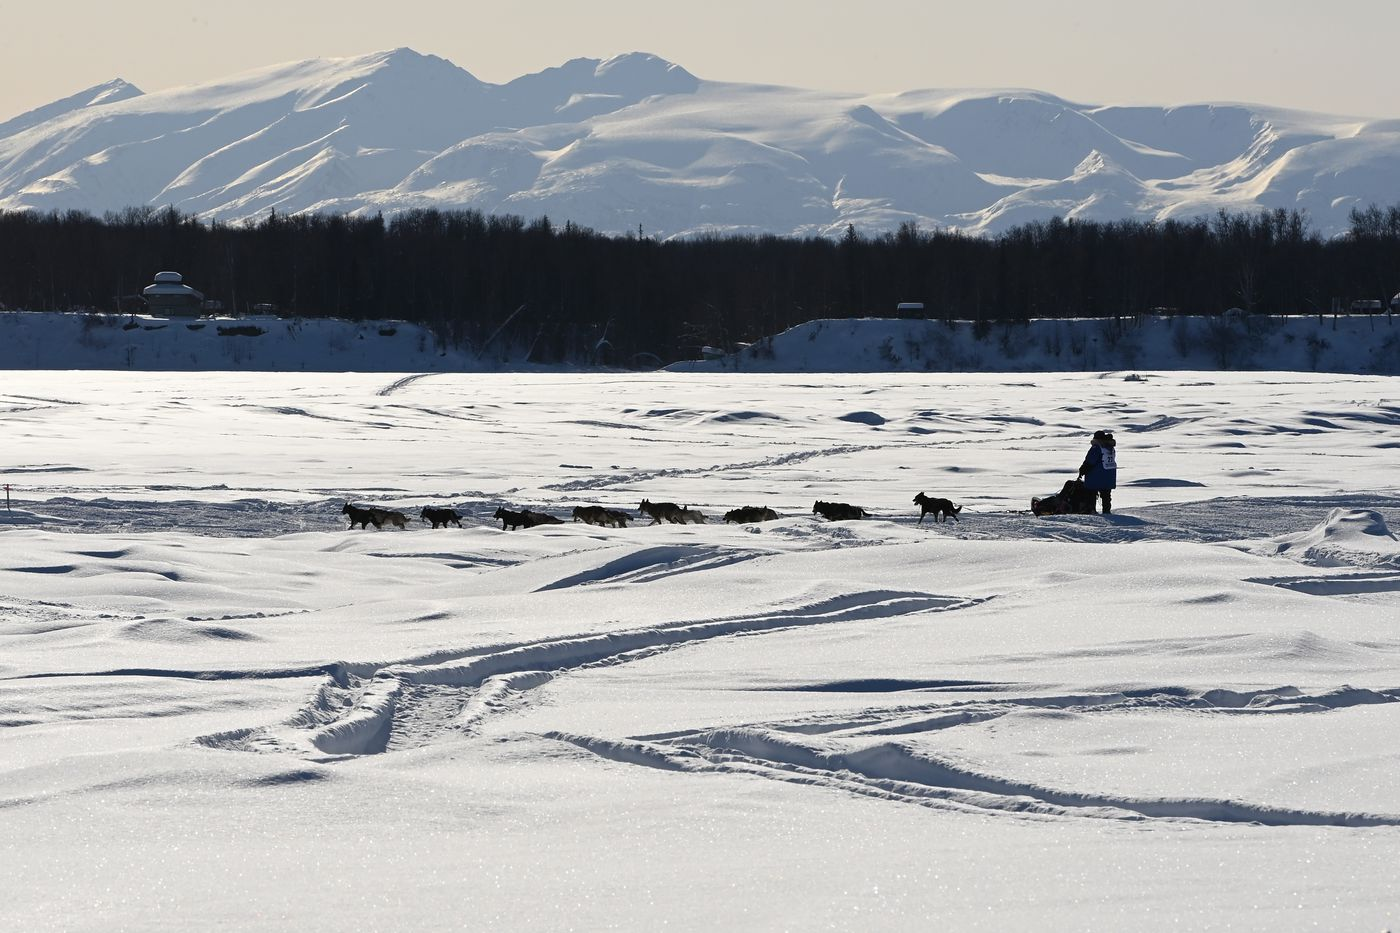 Iditarod rookie Will Troshynski travels down the Susitna River at the beginning of the Iditarod Trail Sled Dog Race on Sunday, March 7. (Bill Roth / ADN)